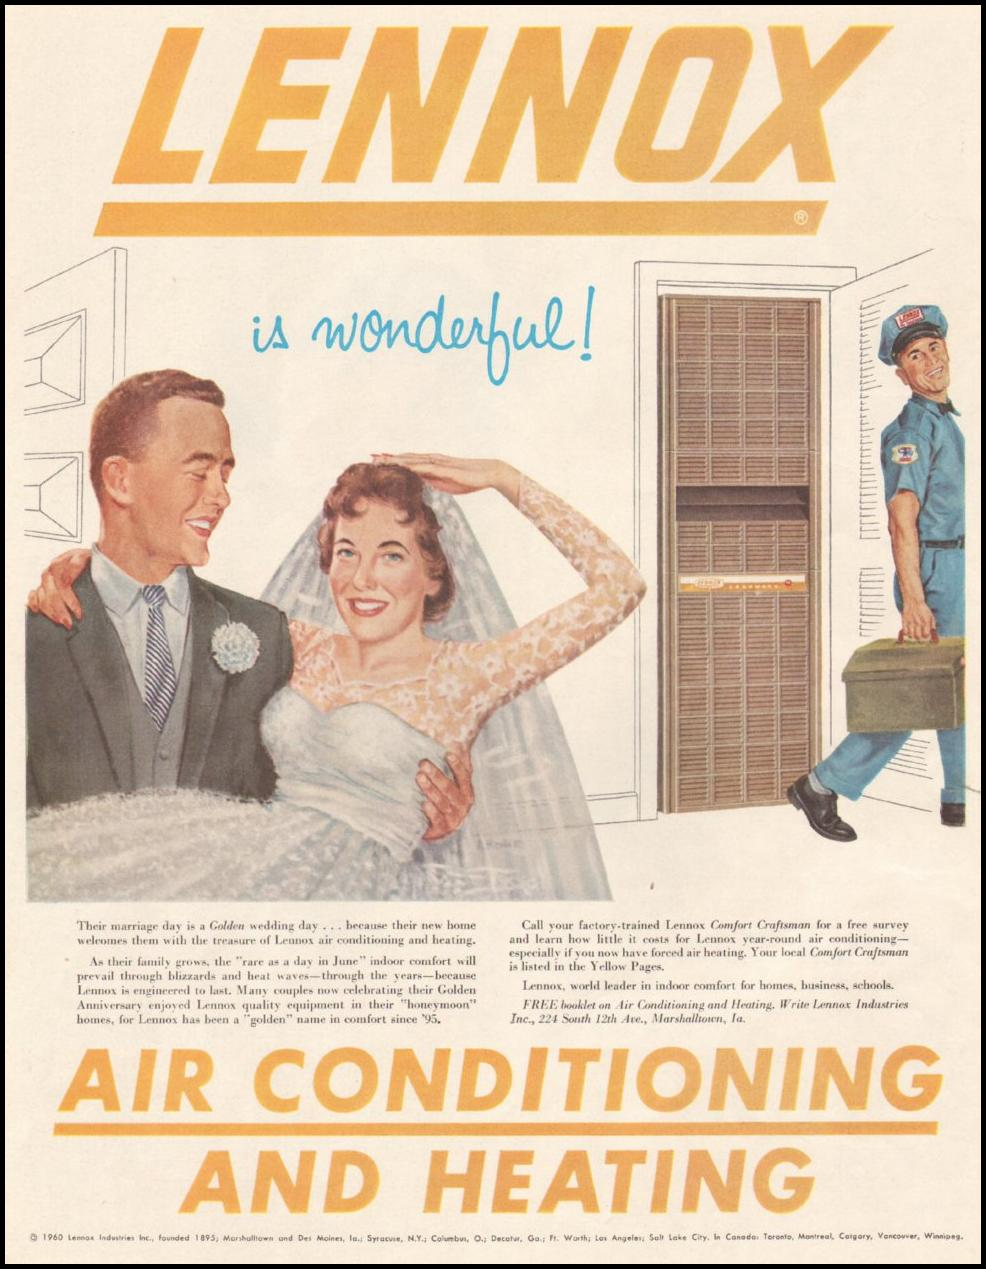 LENNOX AIR CONDITIONING AND HEATING